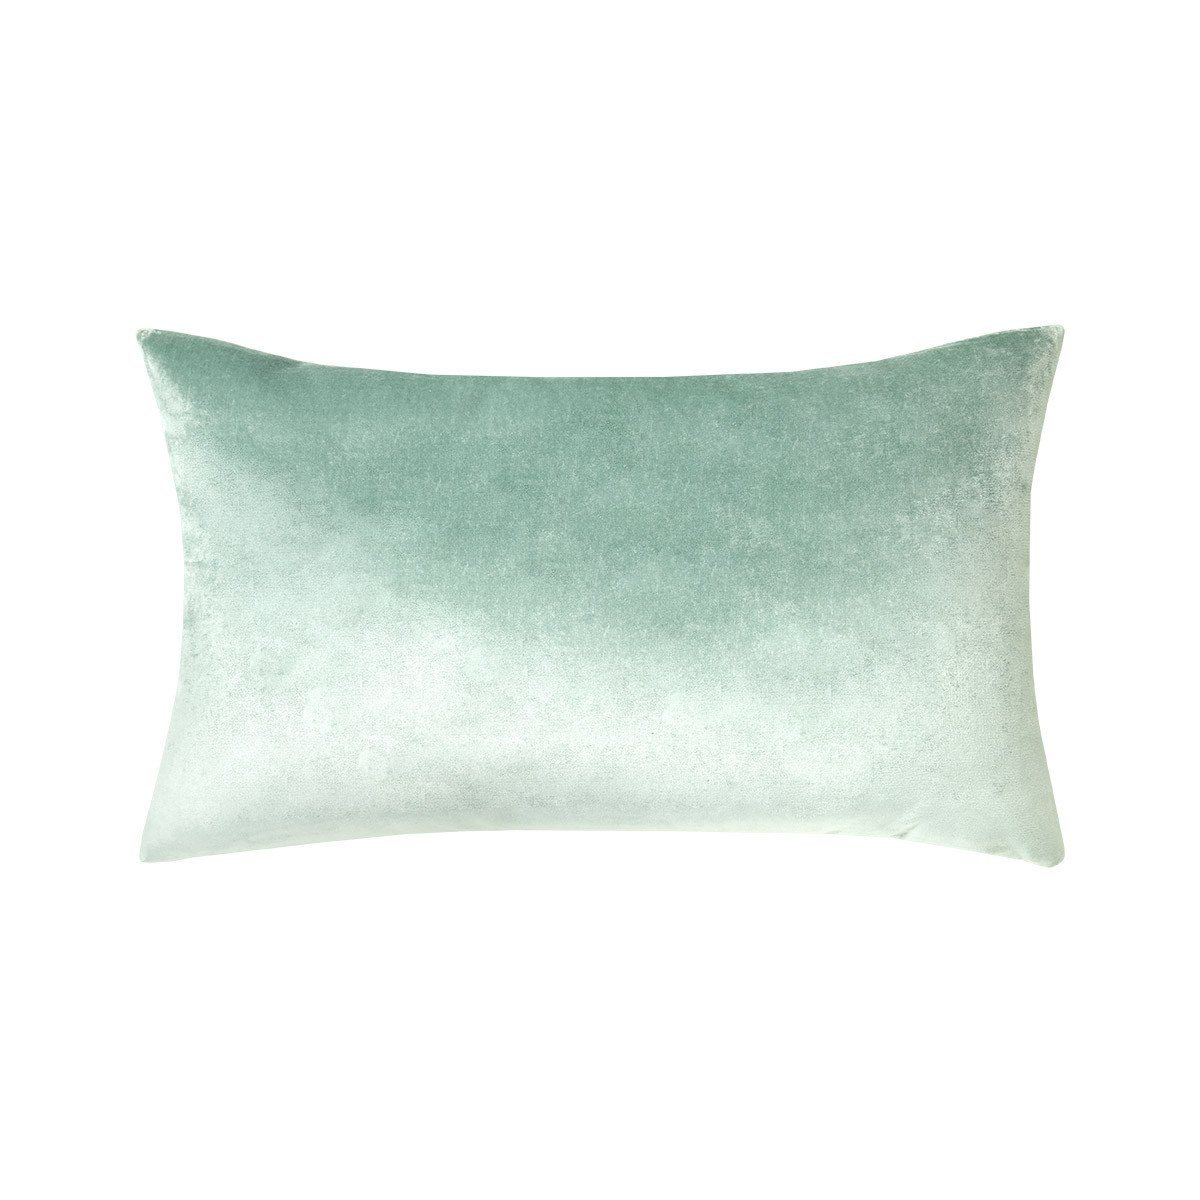 Berlingot Jade Lumbar Pillow by Iosis